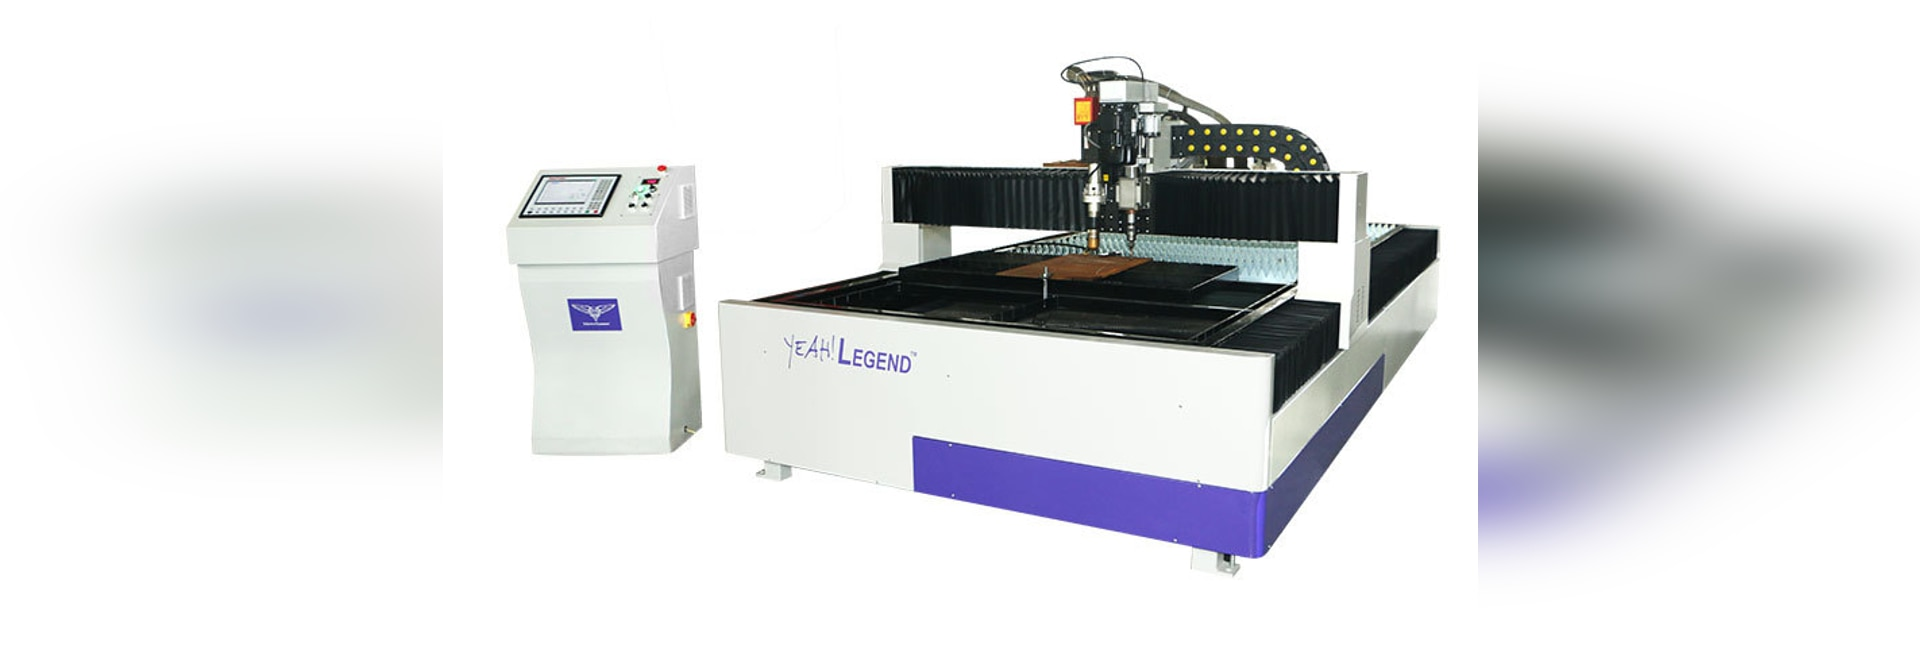 Legend Plus Economical Solutions for Cutting and Drilling Process